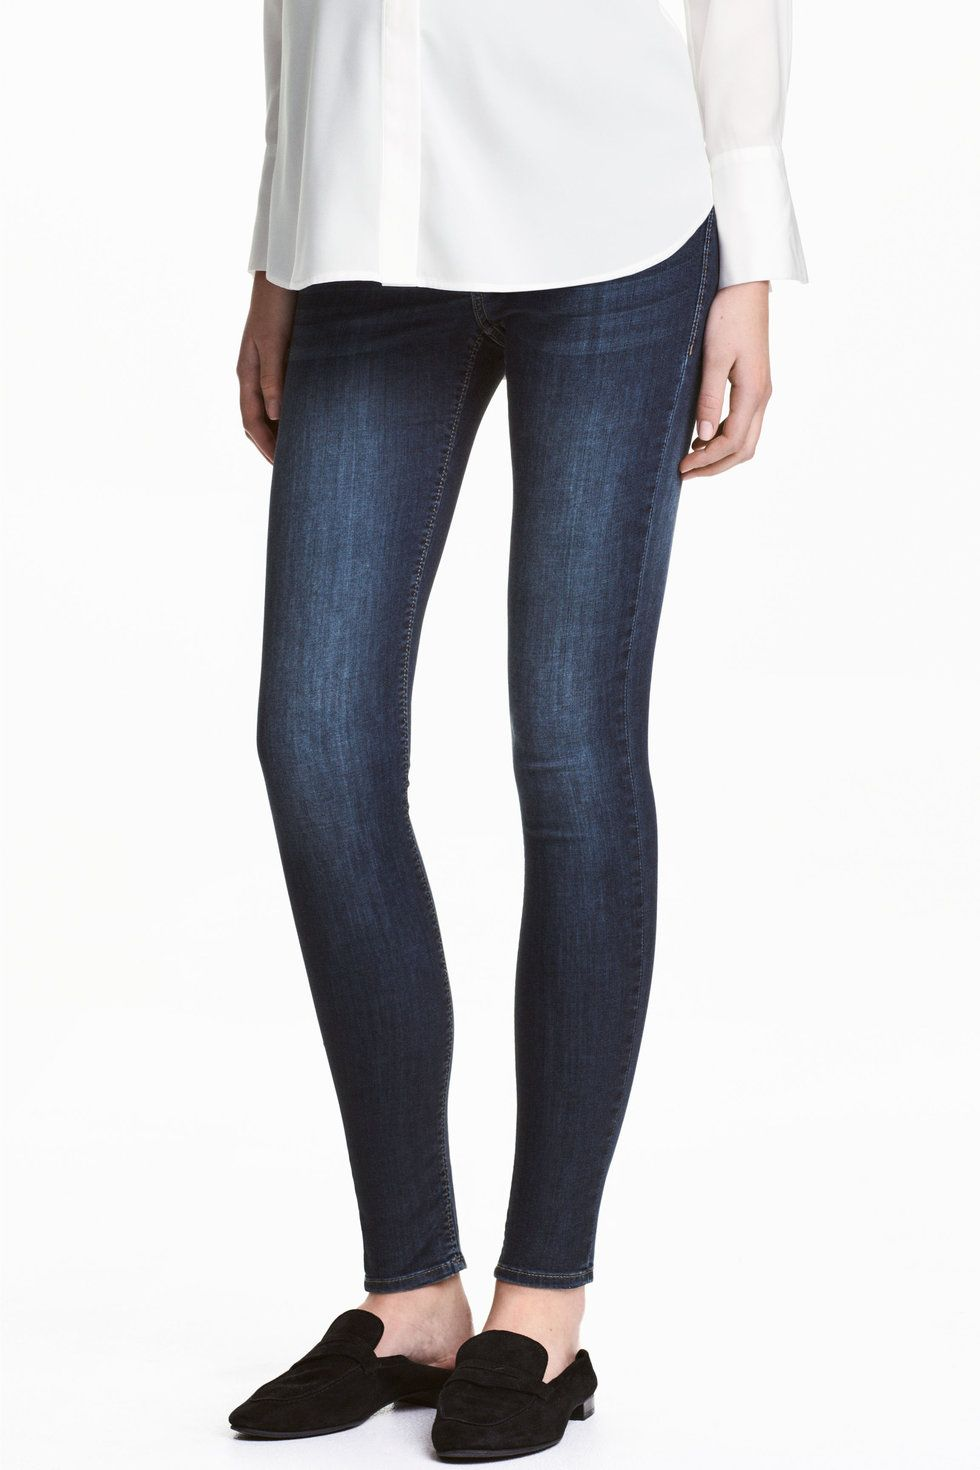 42e829b0cf The 10 Best Maternity Jeans - Motherly